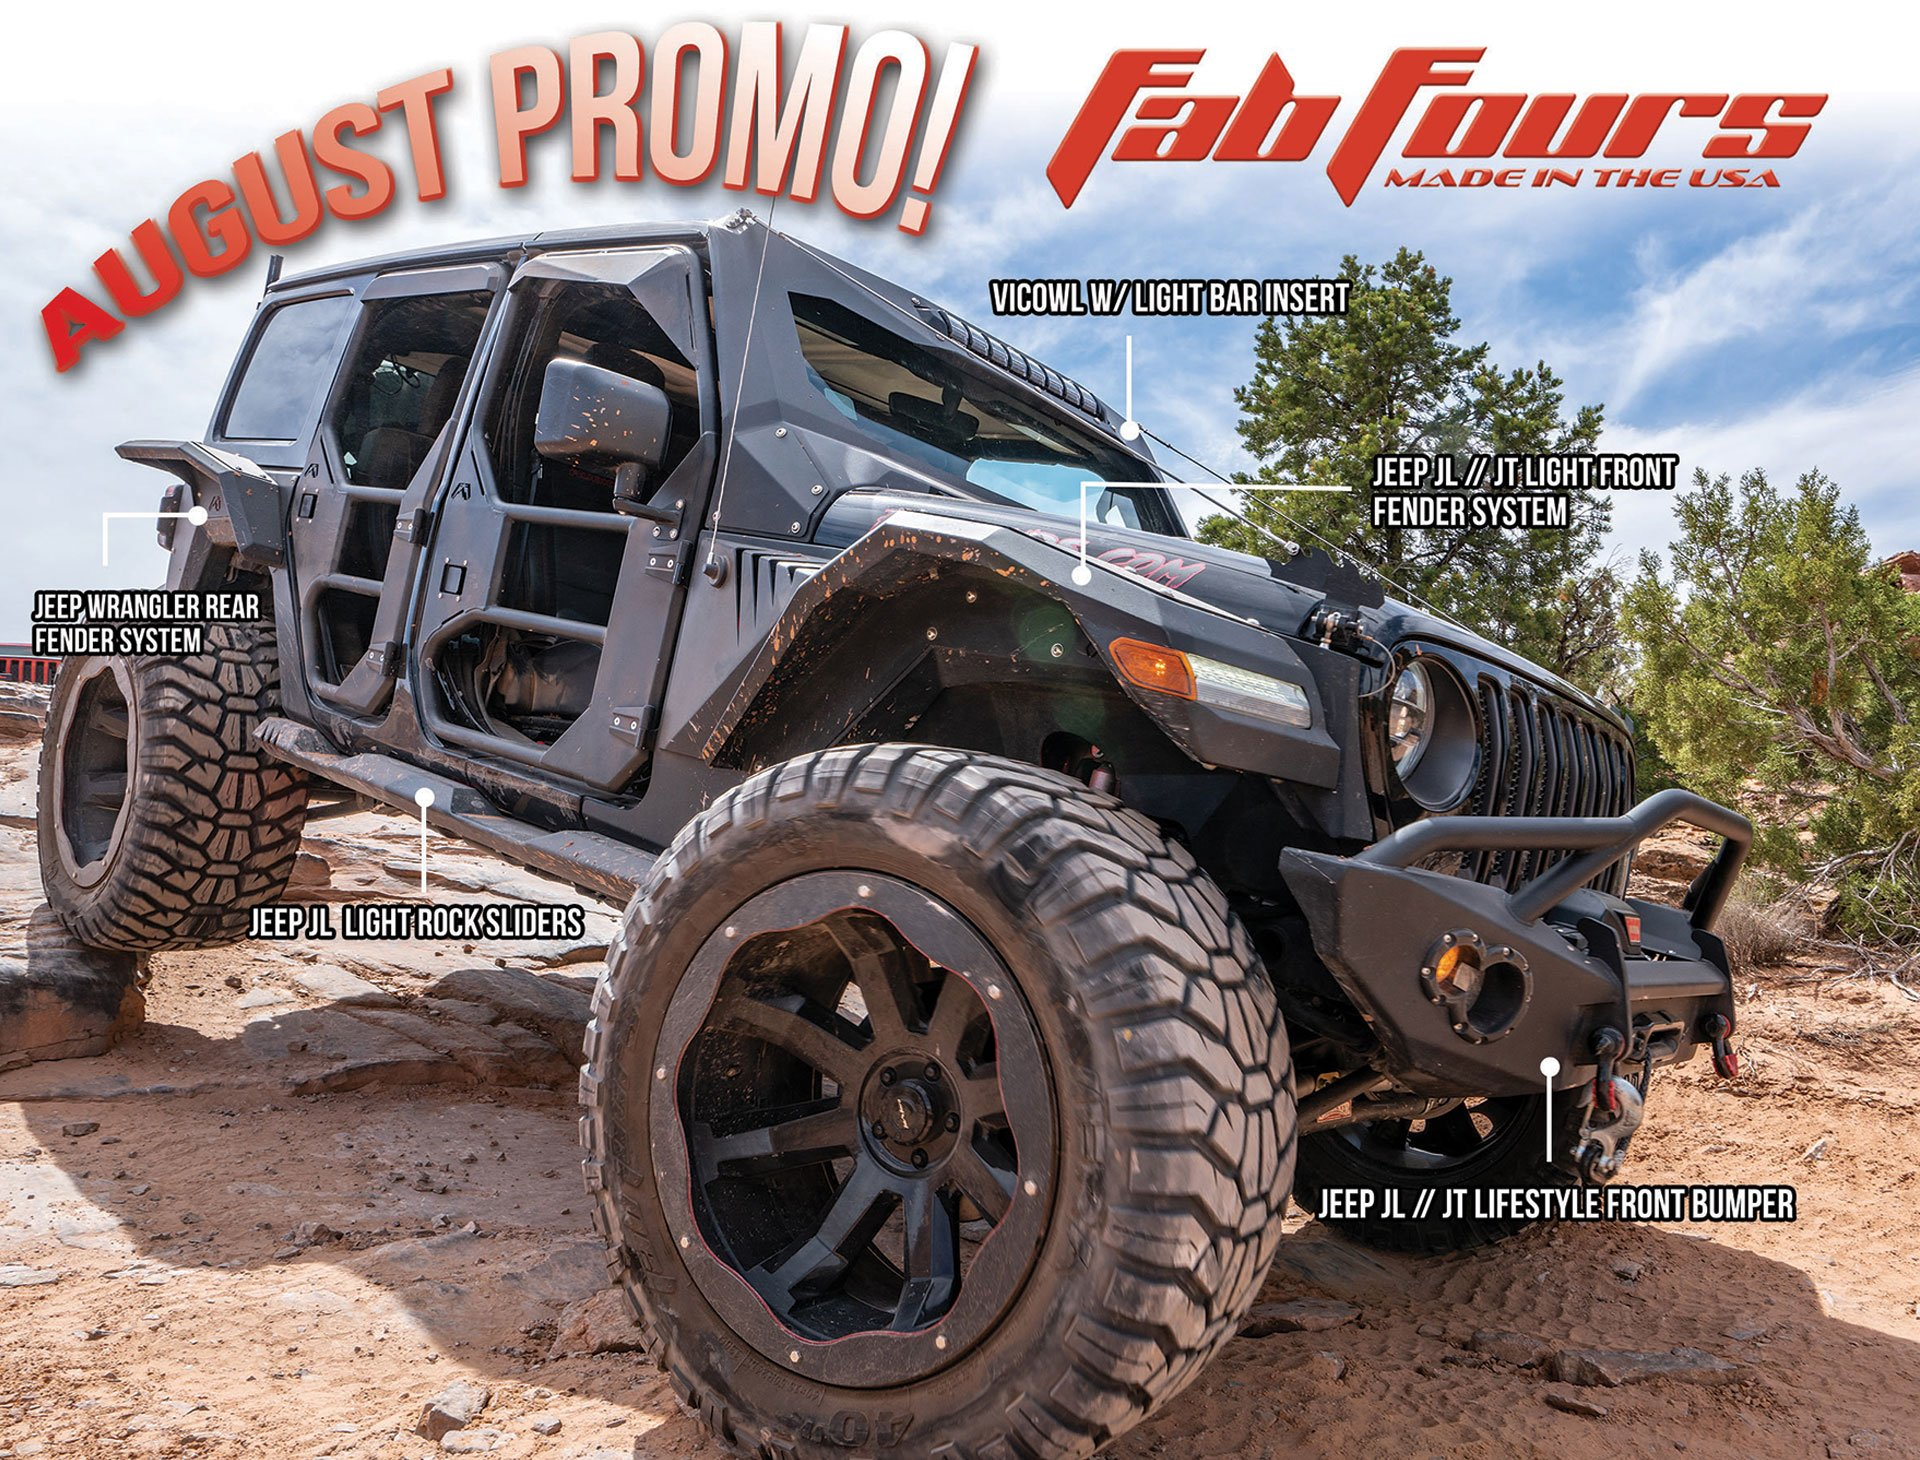 Fab Fours Is Offering Rebate On Jeep Bumpers And More